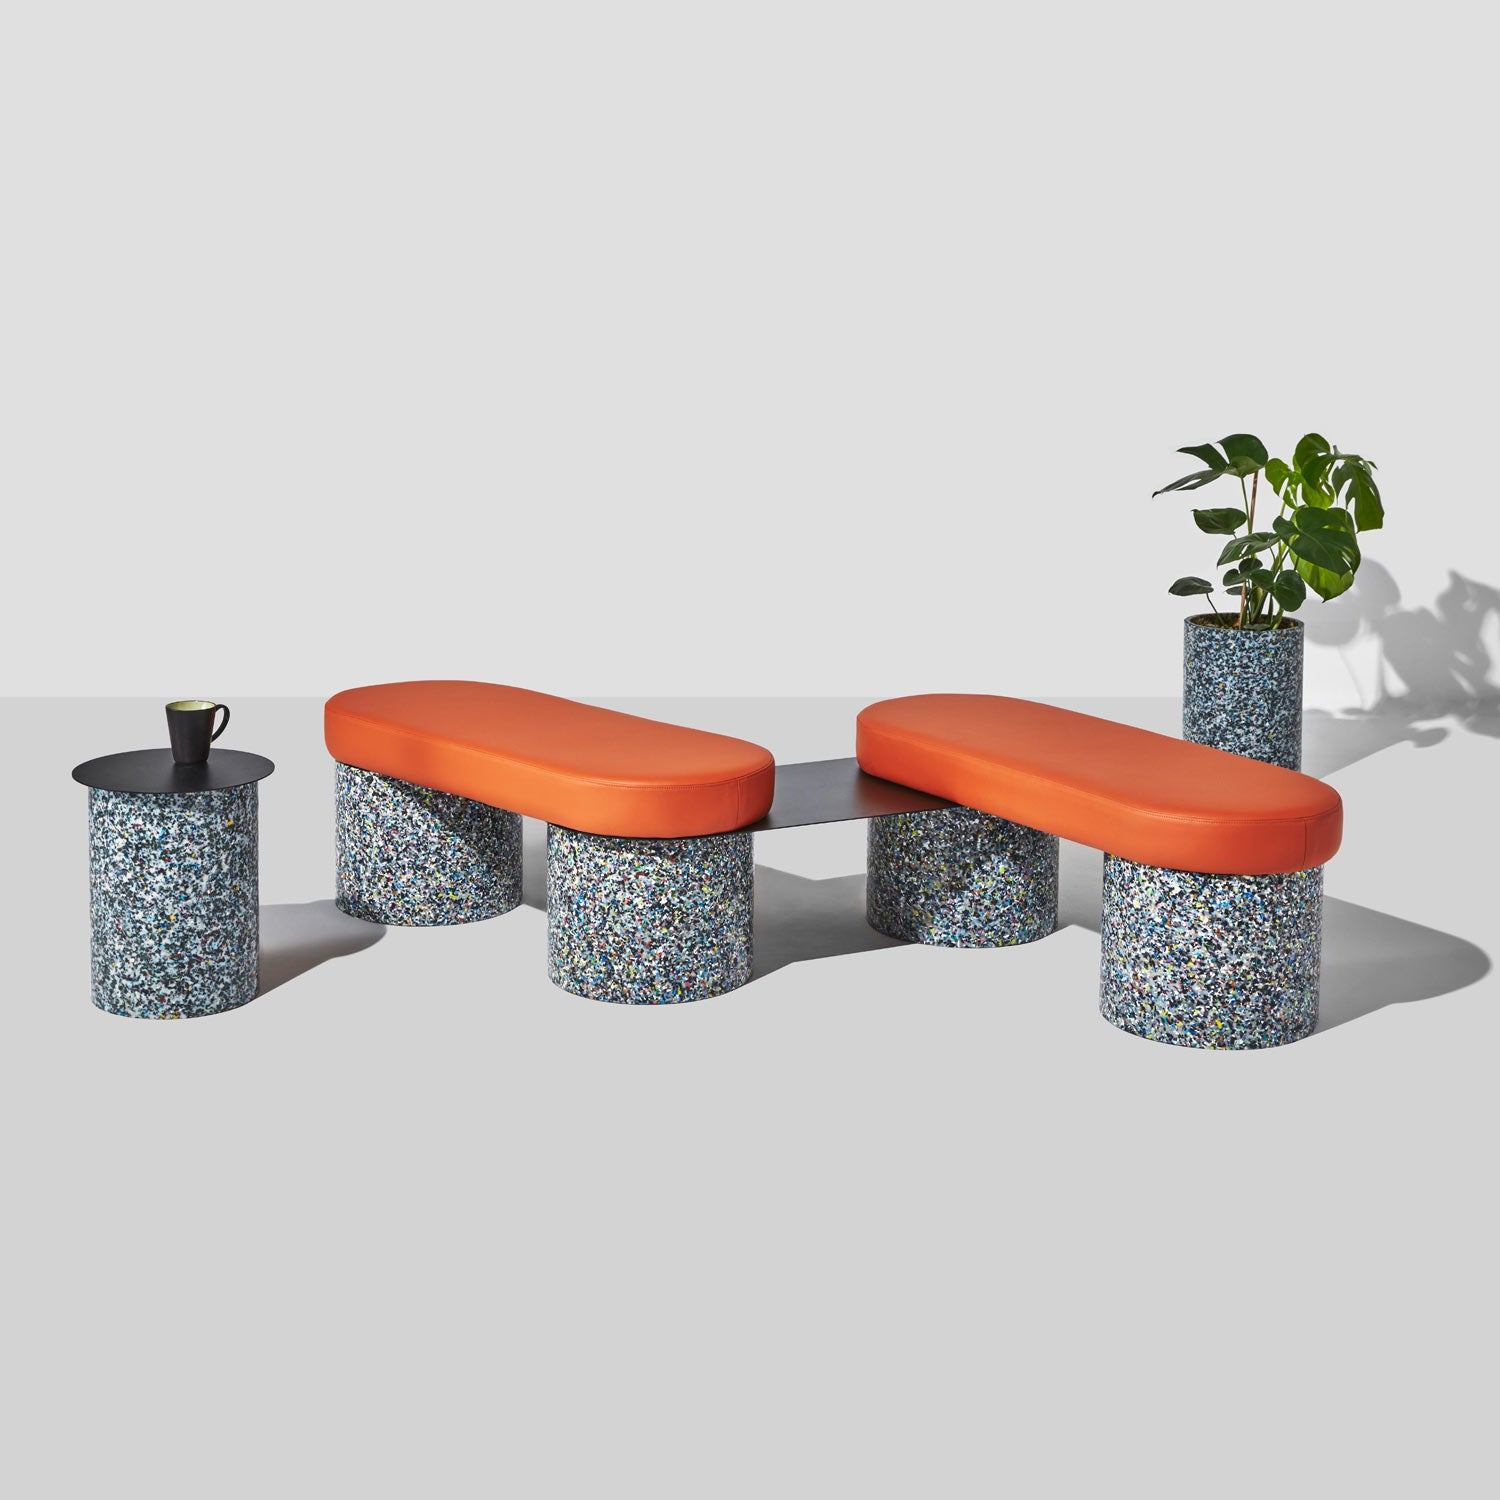 Confetti Range | 100% Recycled Plastic Indoor/Outdoor Furniture | DesignByThem | GibsonKarlo